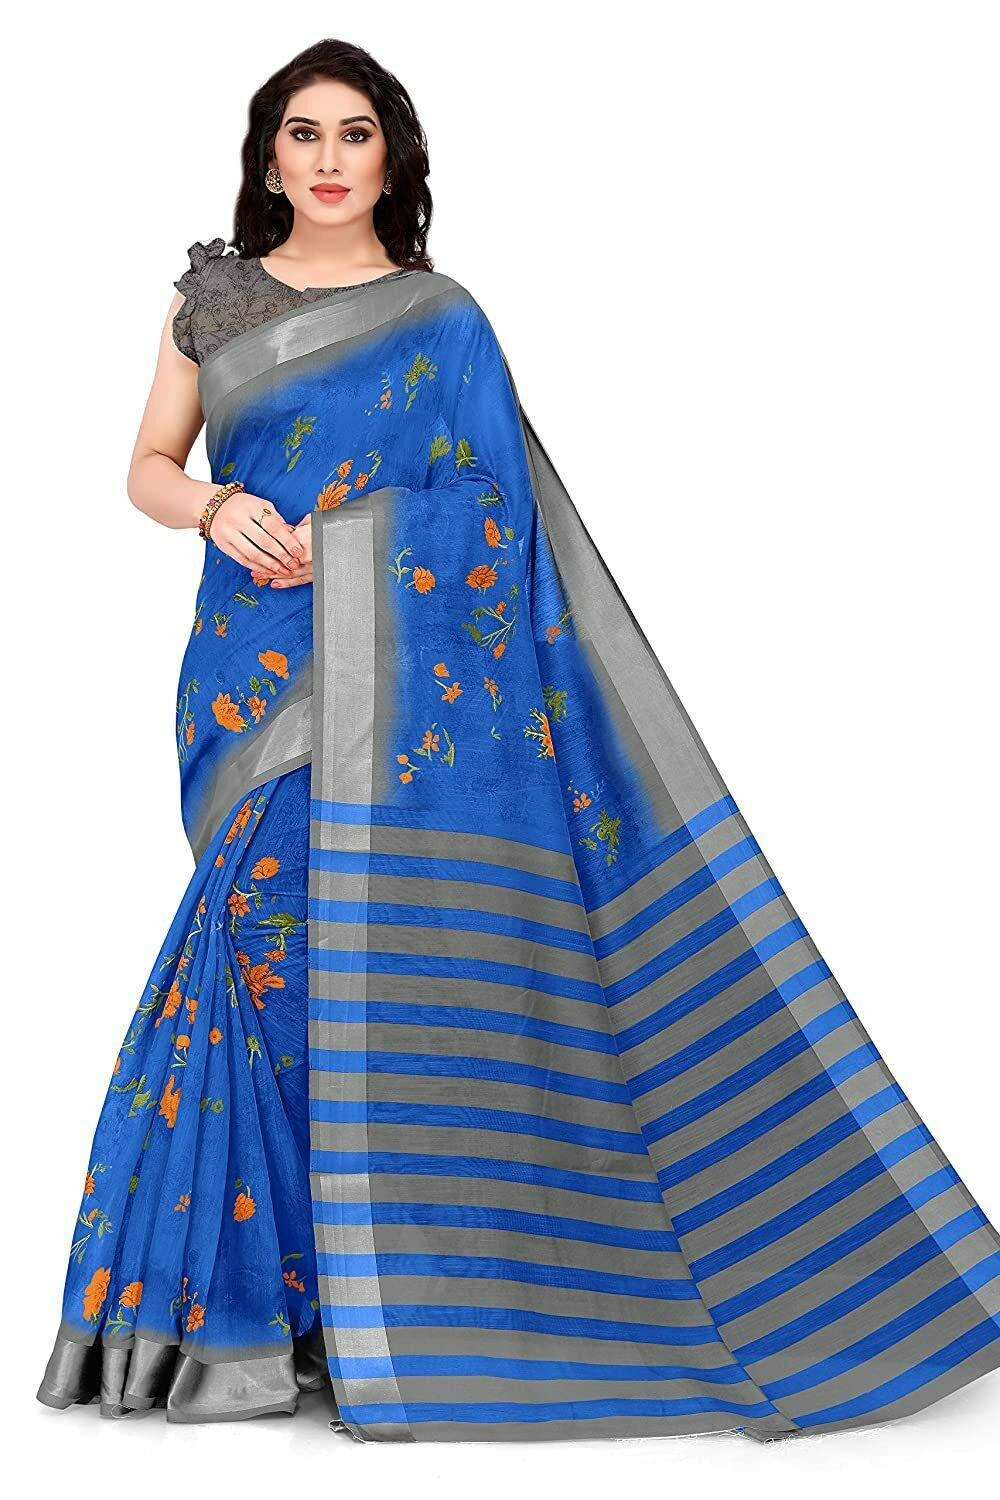 Women's Cotton Blend Saree With Unstitched Blouse Piece ( Free Shipping )